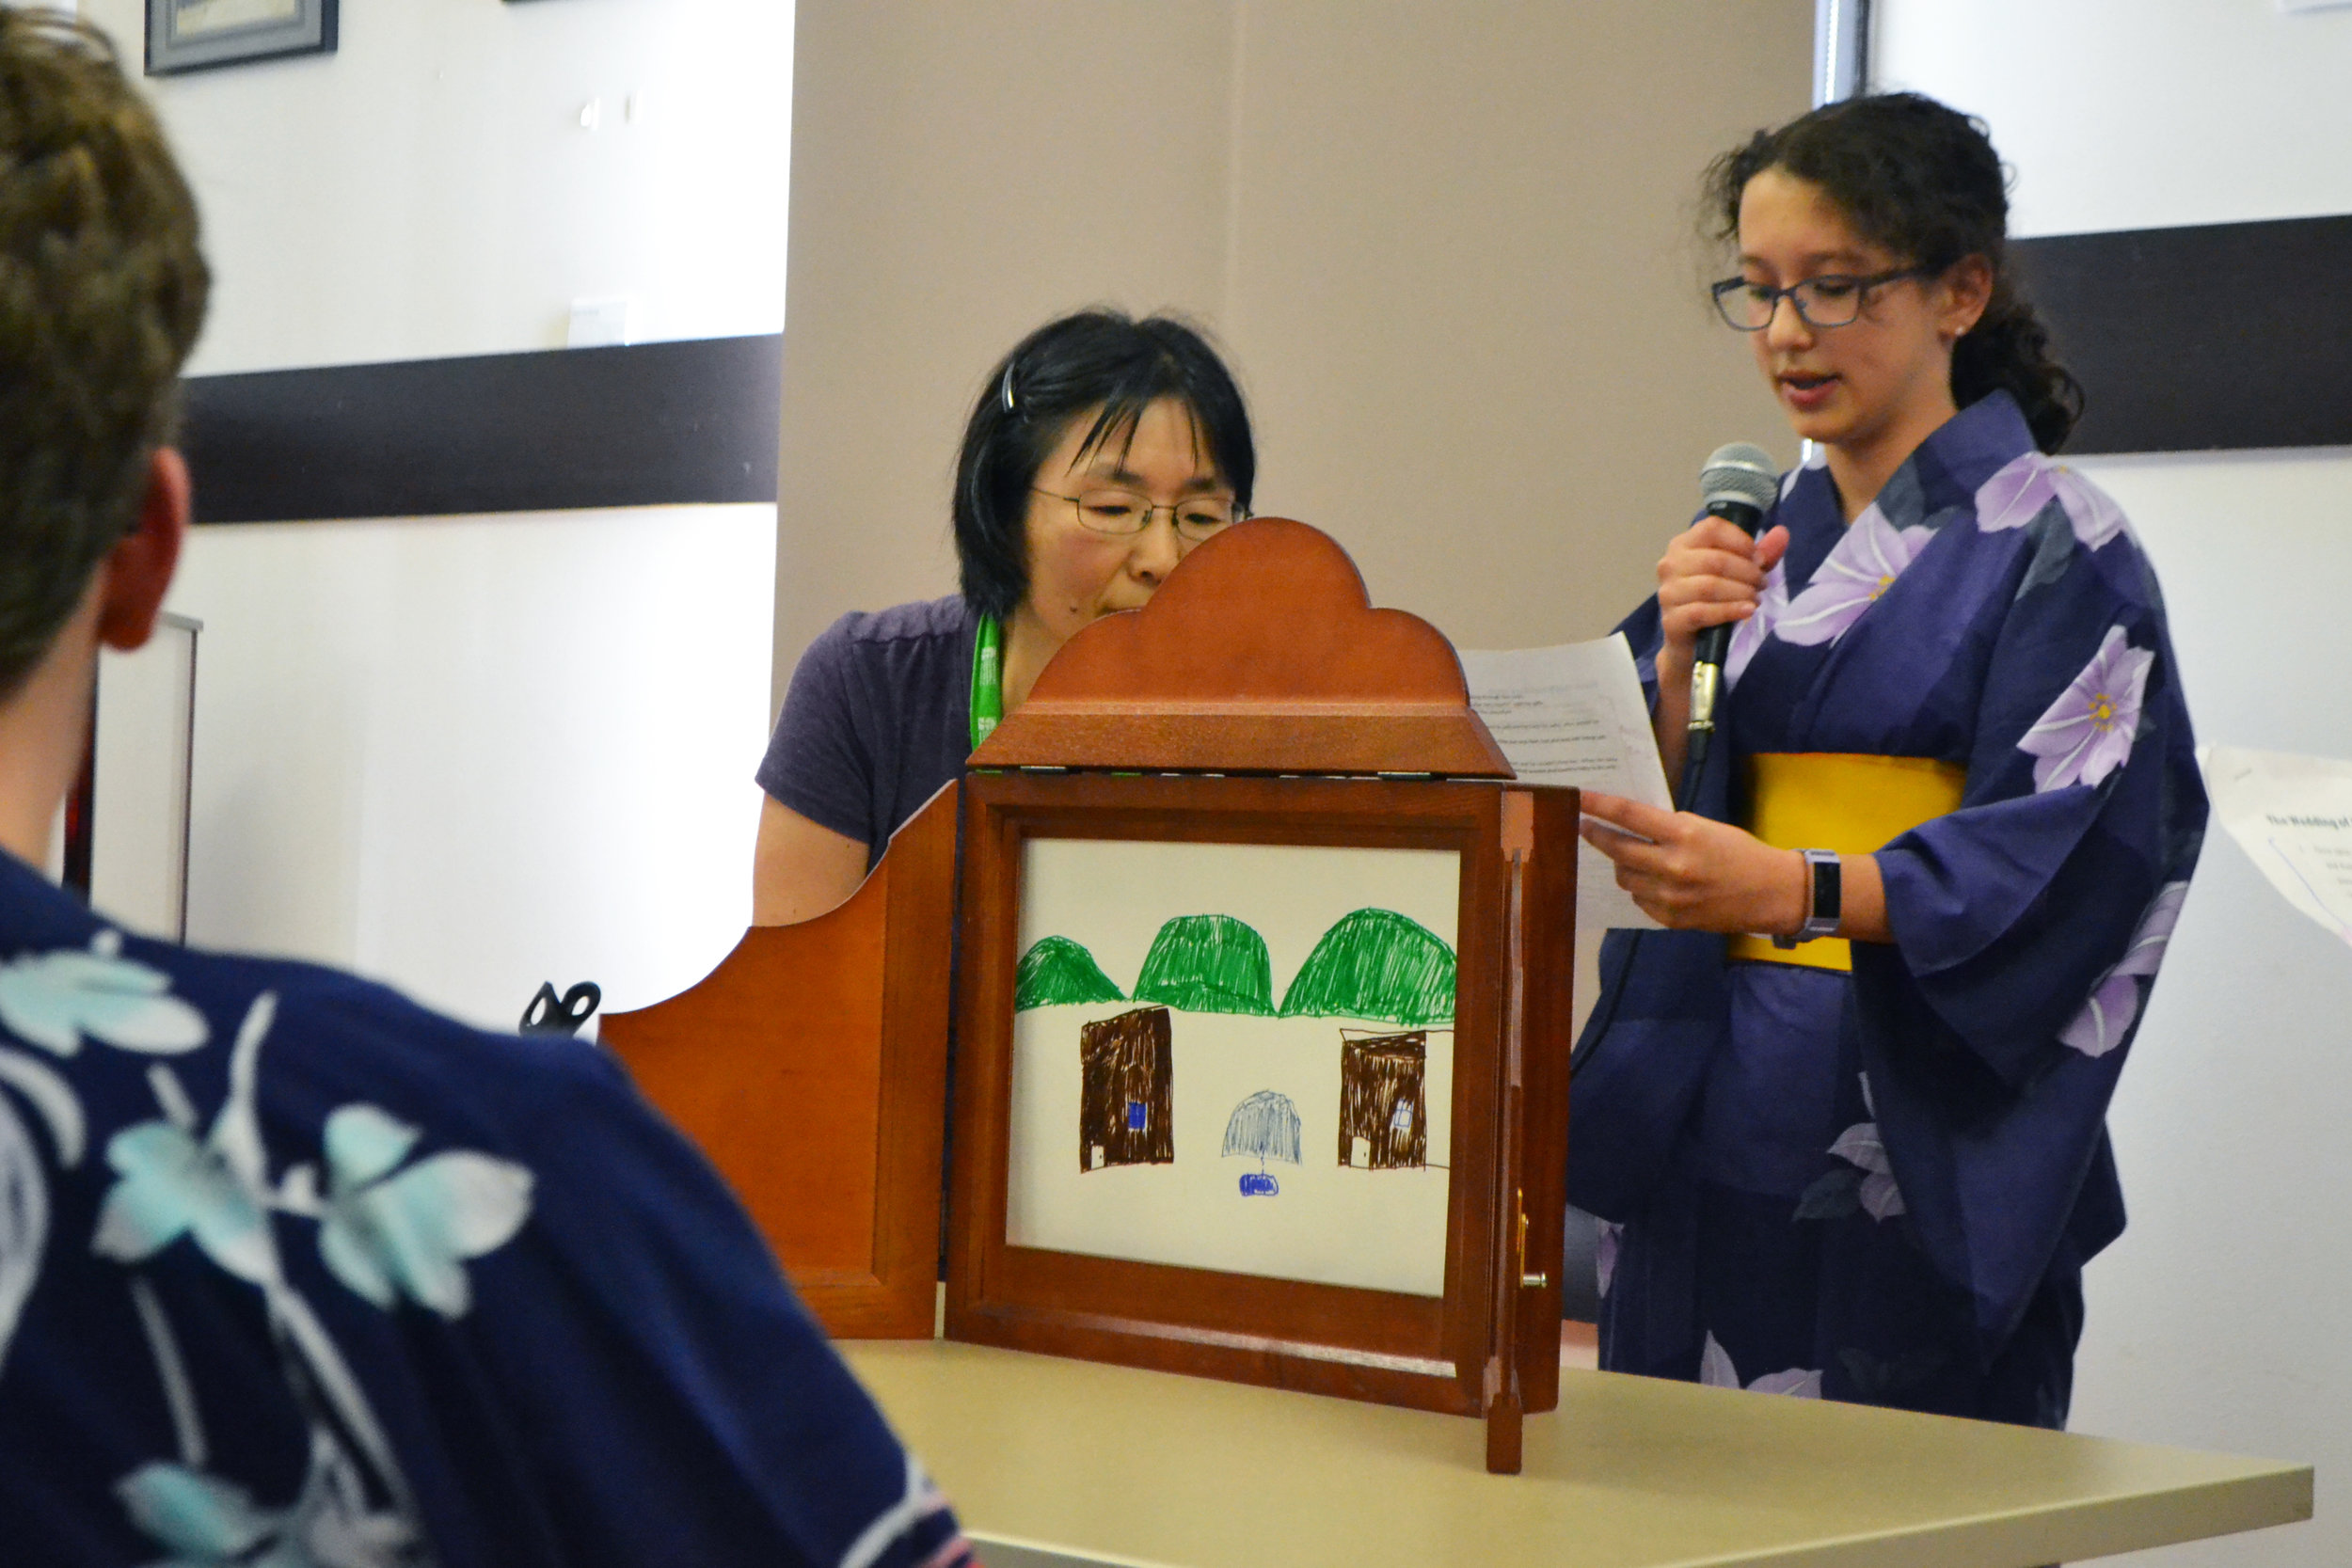 Campers in second week performed Kamishibai (Traditional Japanese storytelling method) both in English and Japanese.   Photo by Arisa Nakamura